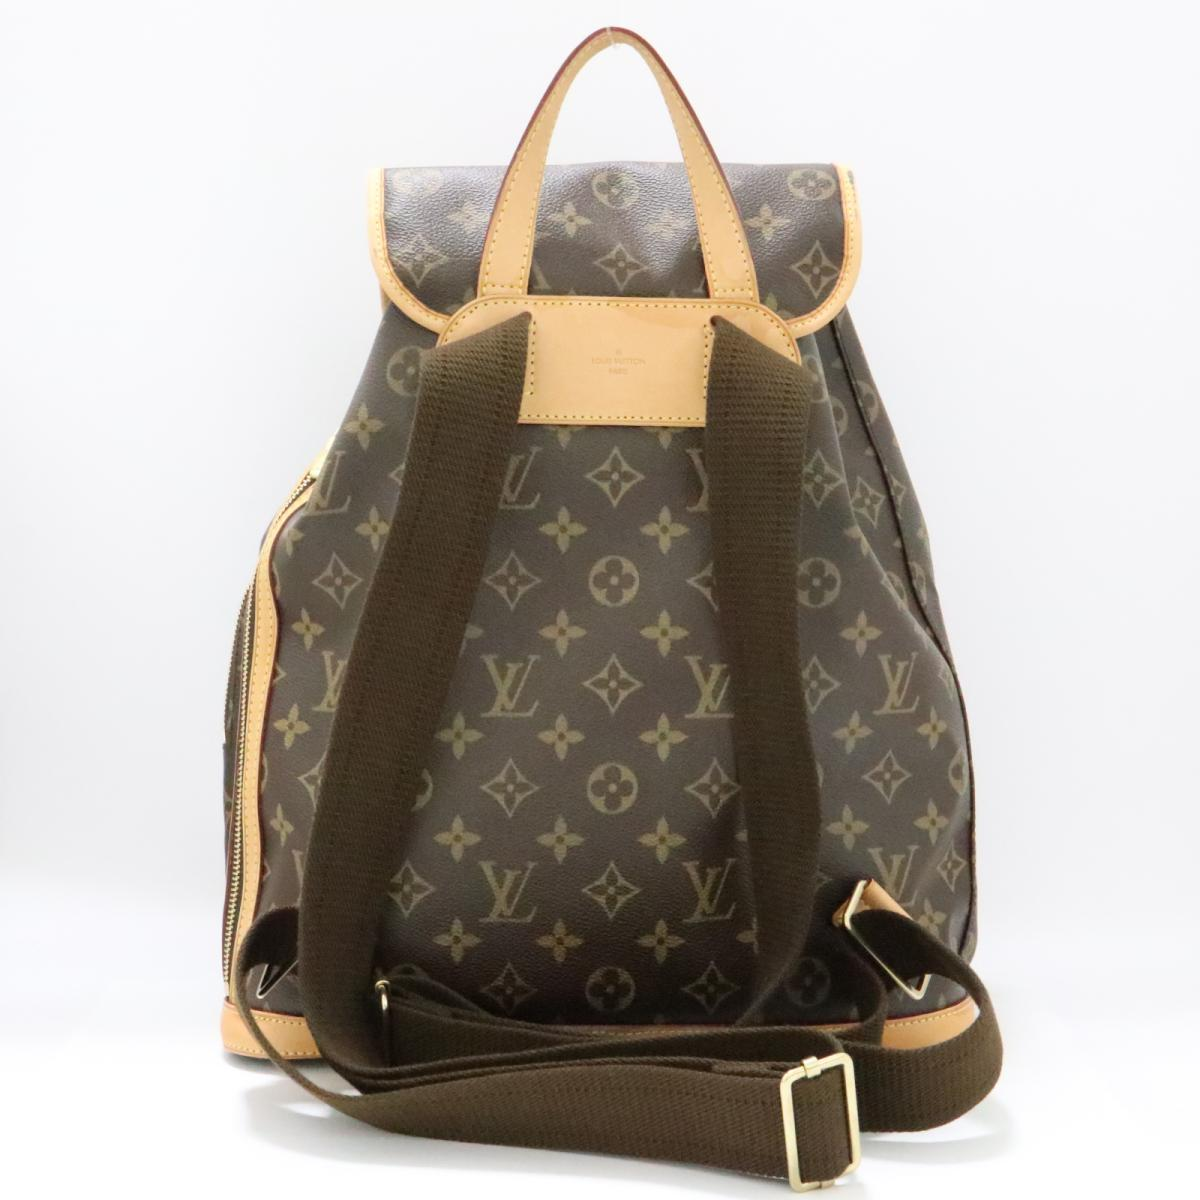 a8c2028ed258 Auth LOUIS VUITTON Sac A dos Bosphore rucksack Backpack M40107 Monogram  Used